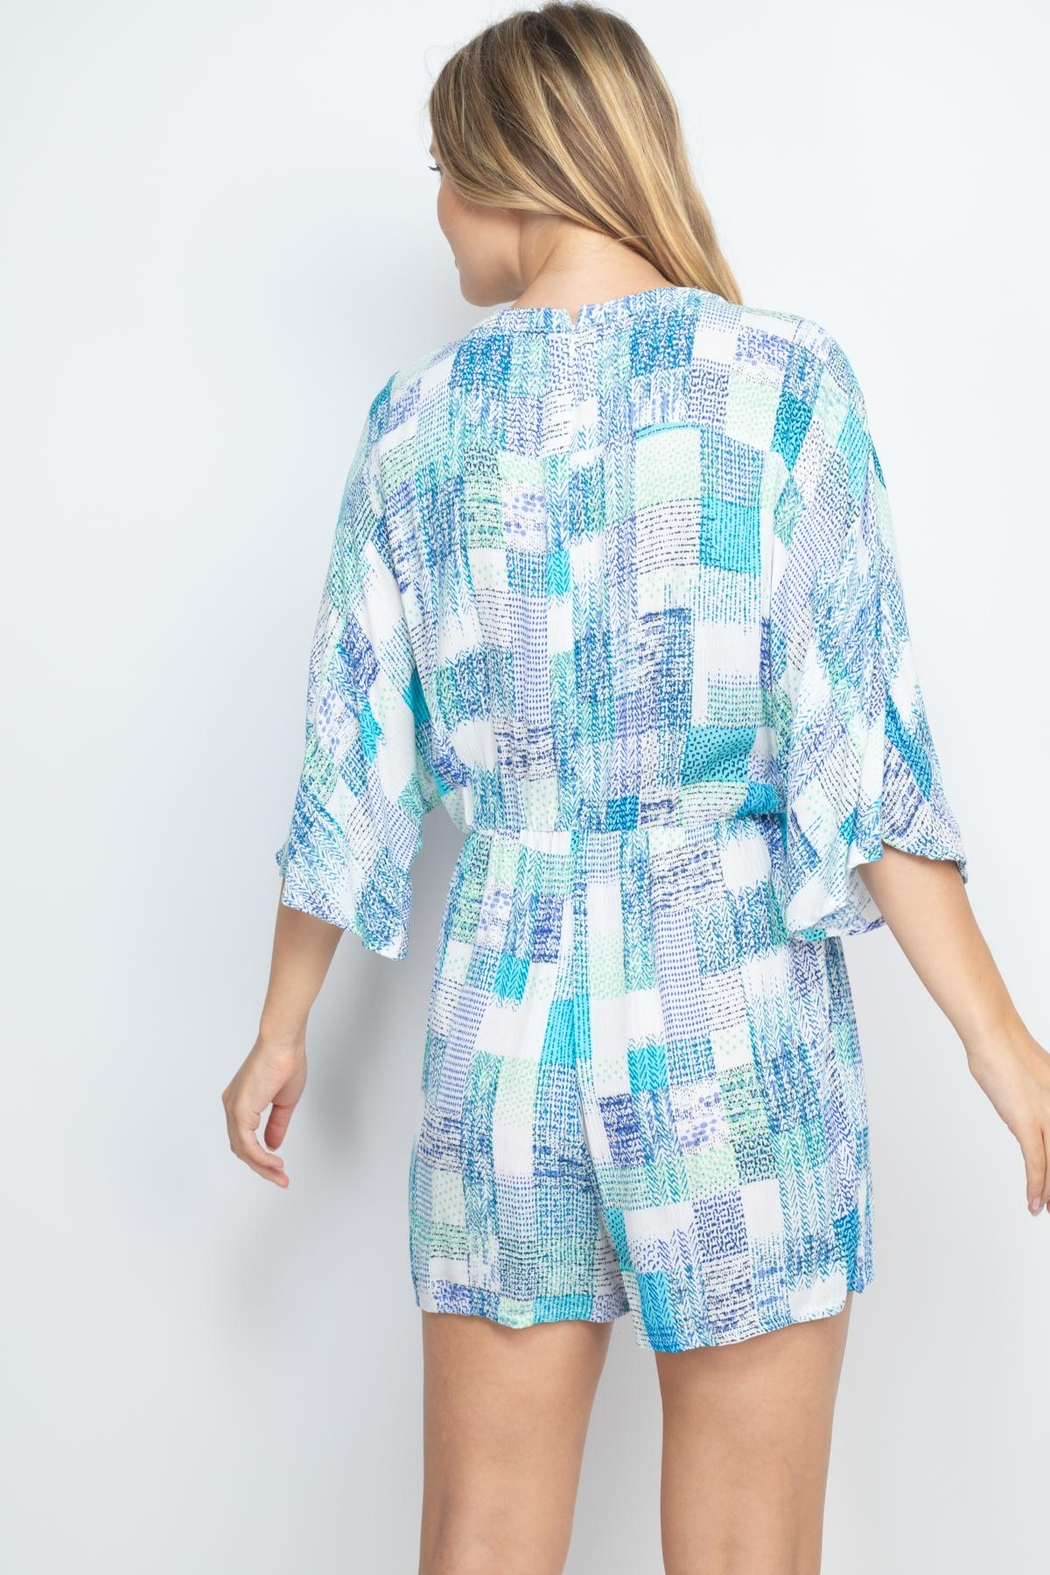 Riah Fashion Off-White-Blue Romper - Front Full Image